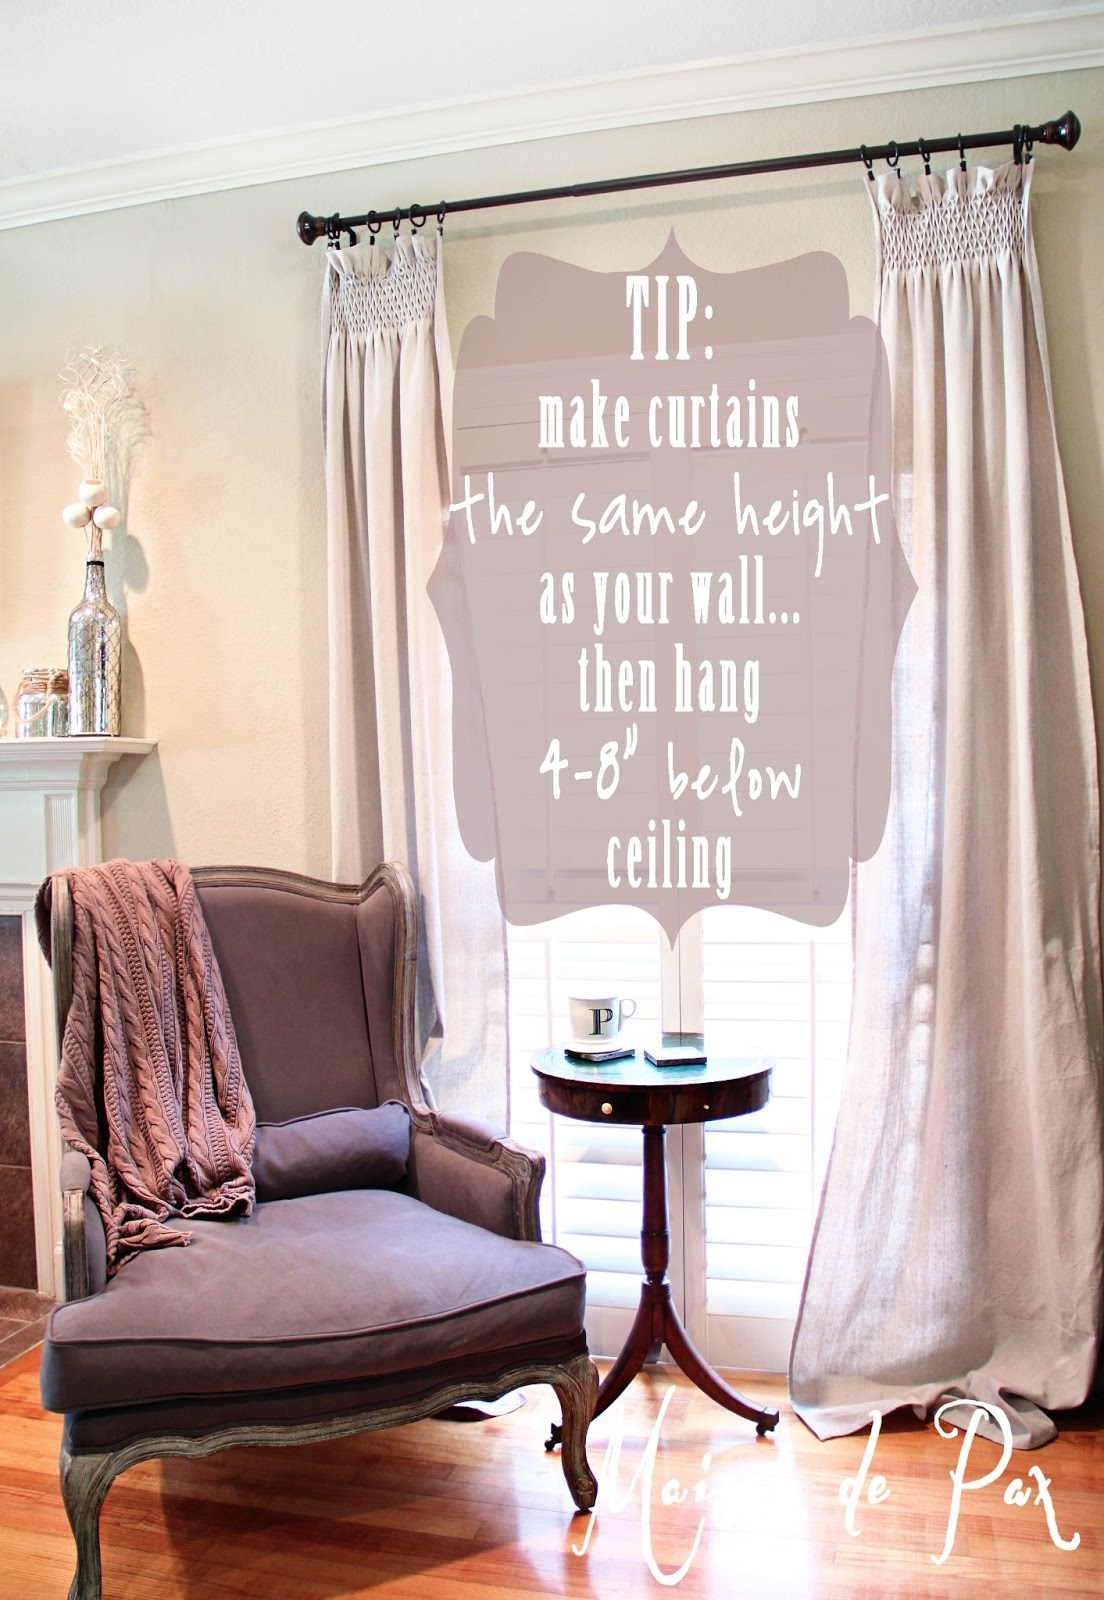 Diy Smocked Curtains Maison De Pax With Regard To 8 Ft Drop Curtains (View 9 of 15)